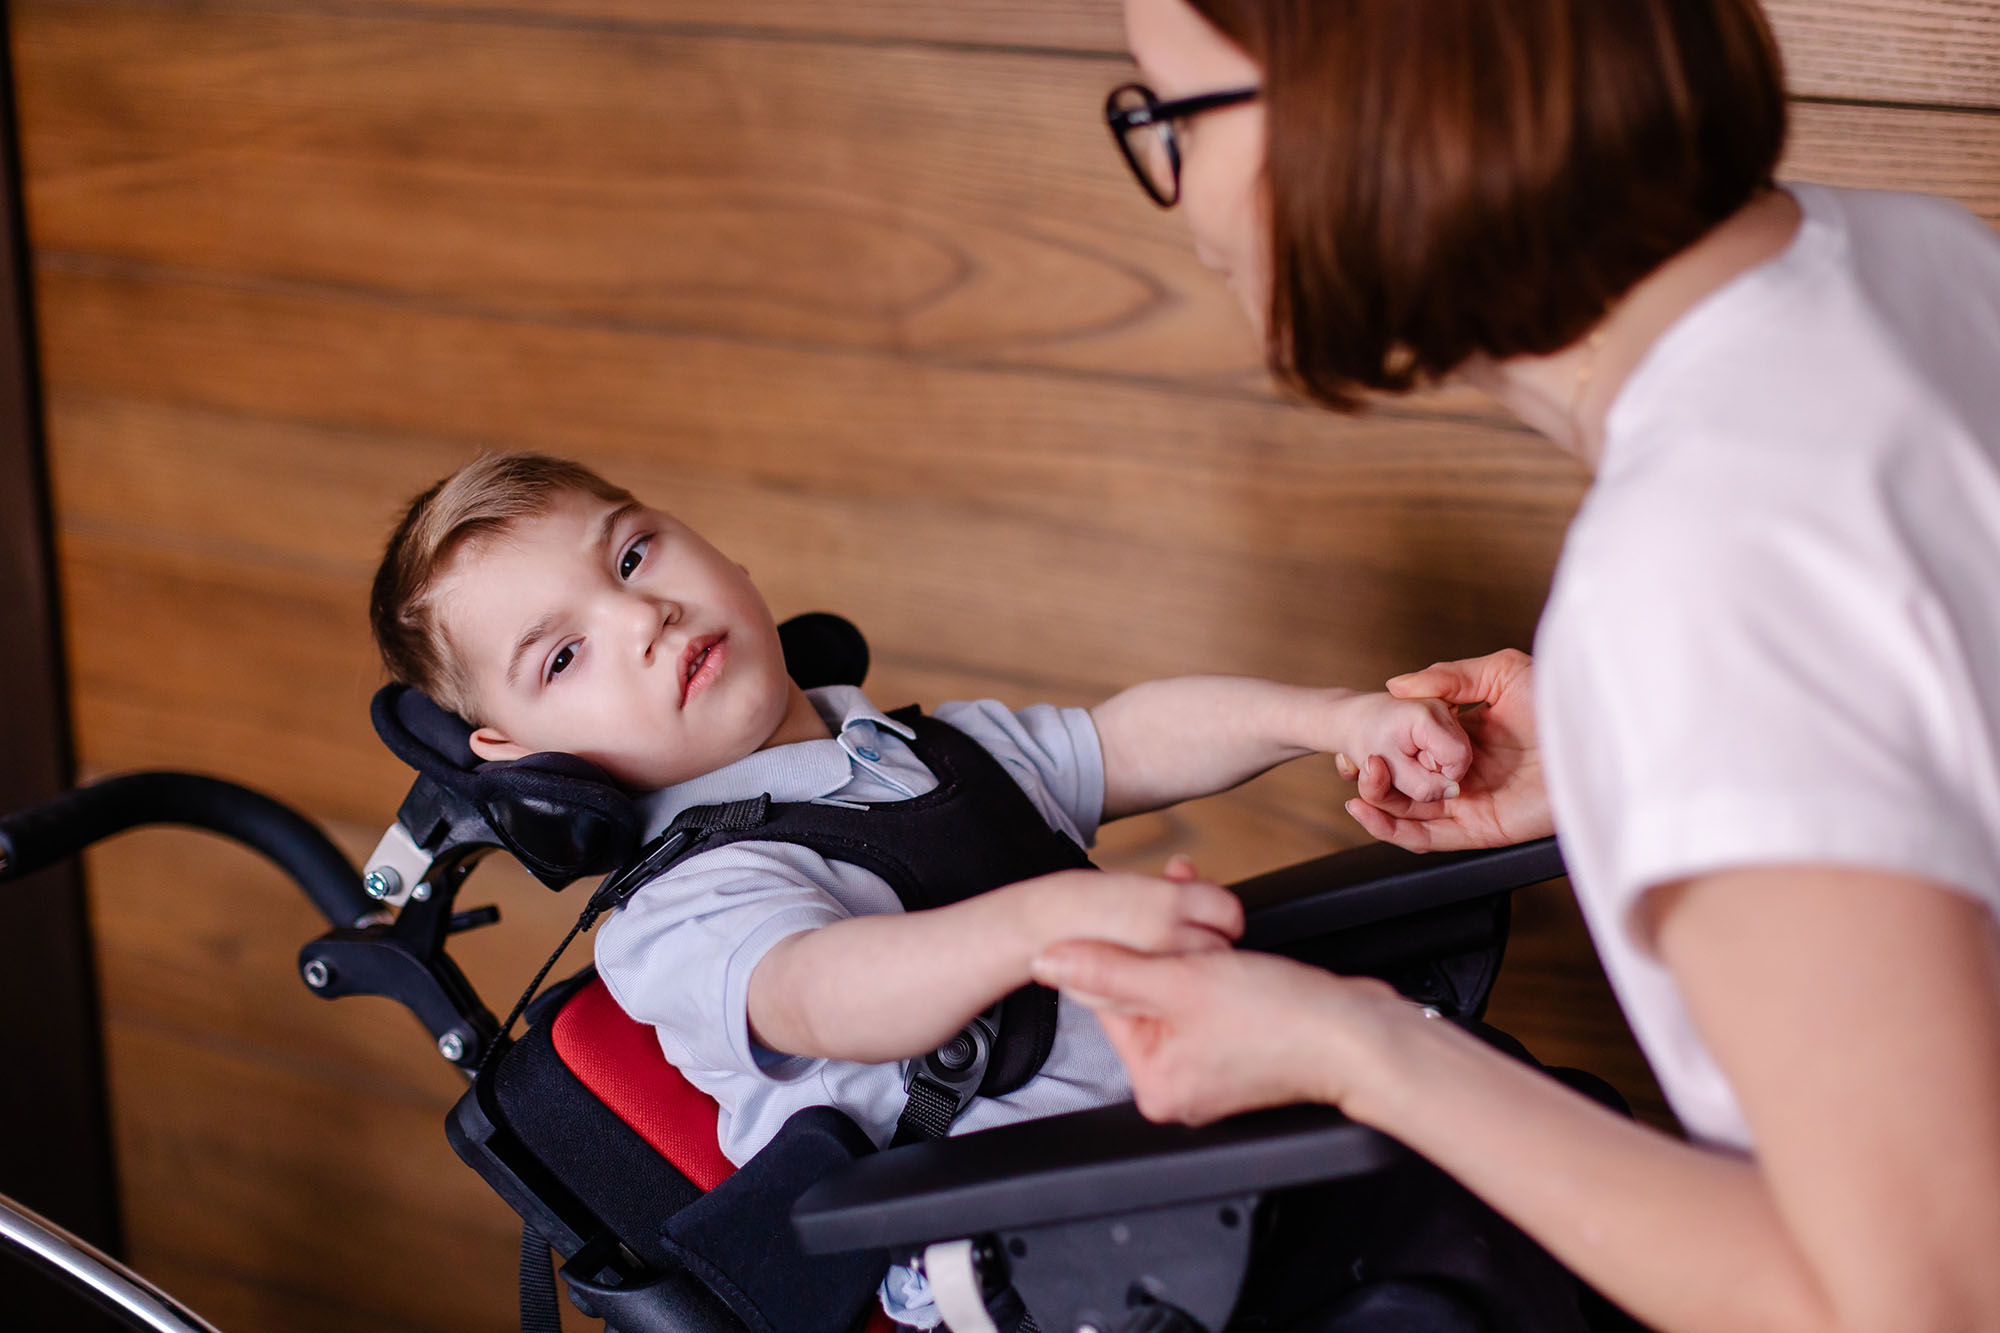 cerebral palsy birth injury oxygen starved medical negligence solicitors Aberdeen